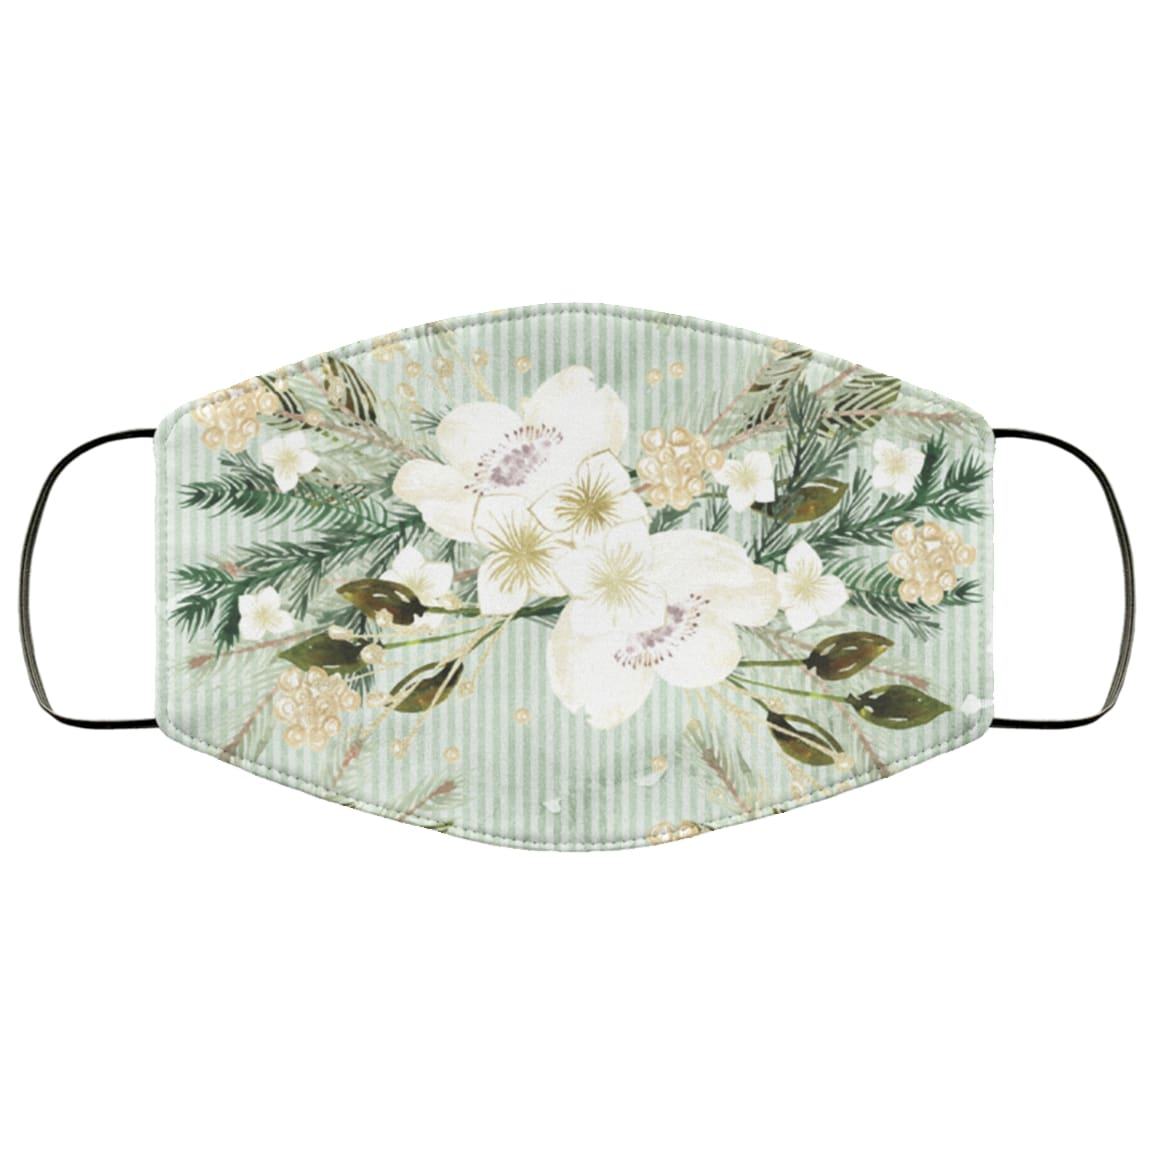 Tropical flowers art anti pollution face mask 2